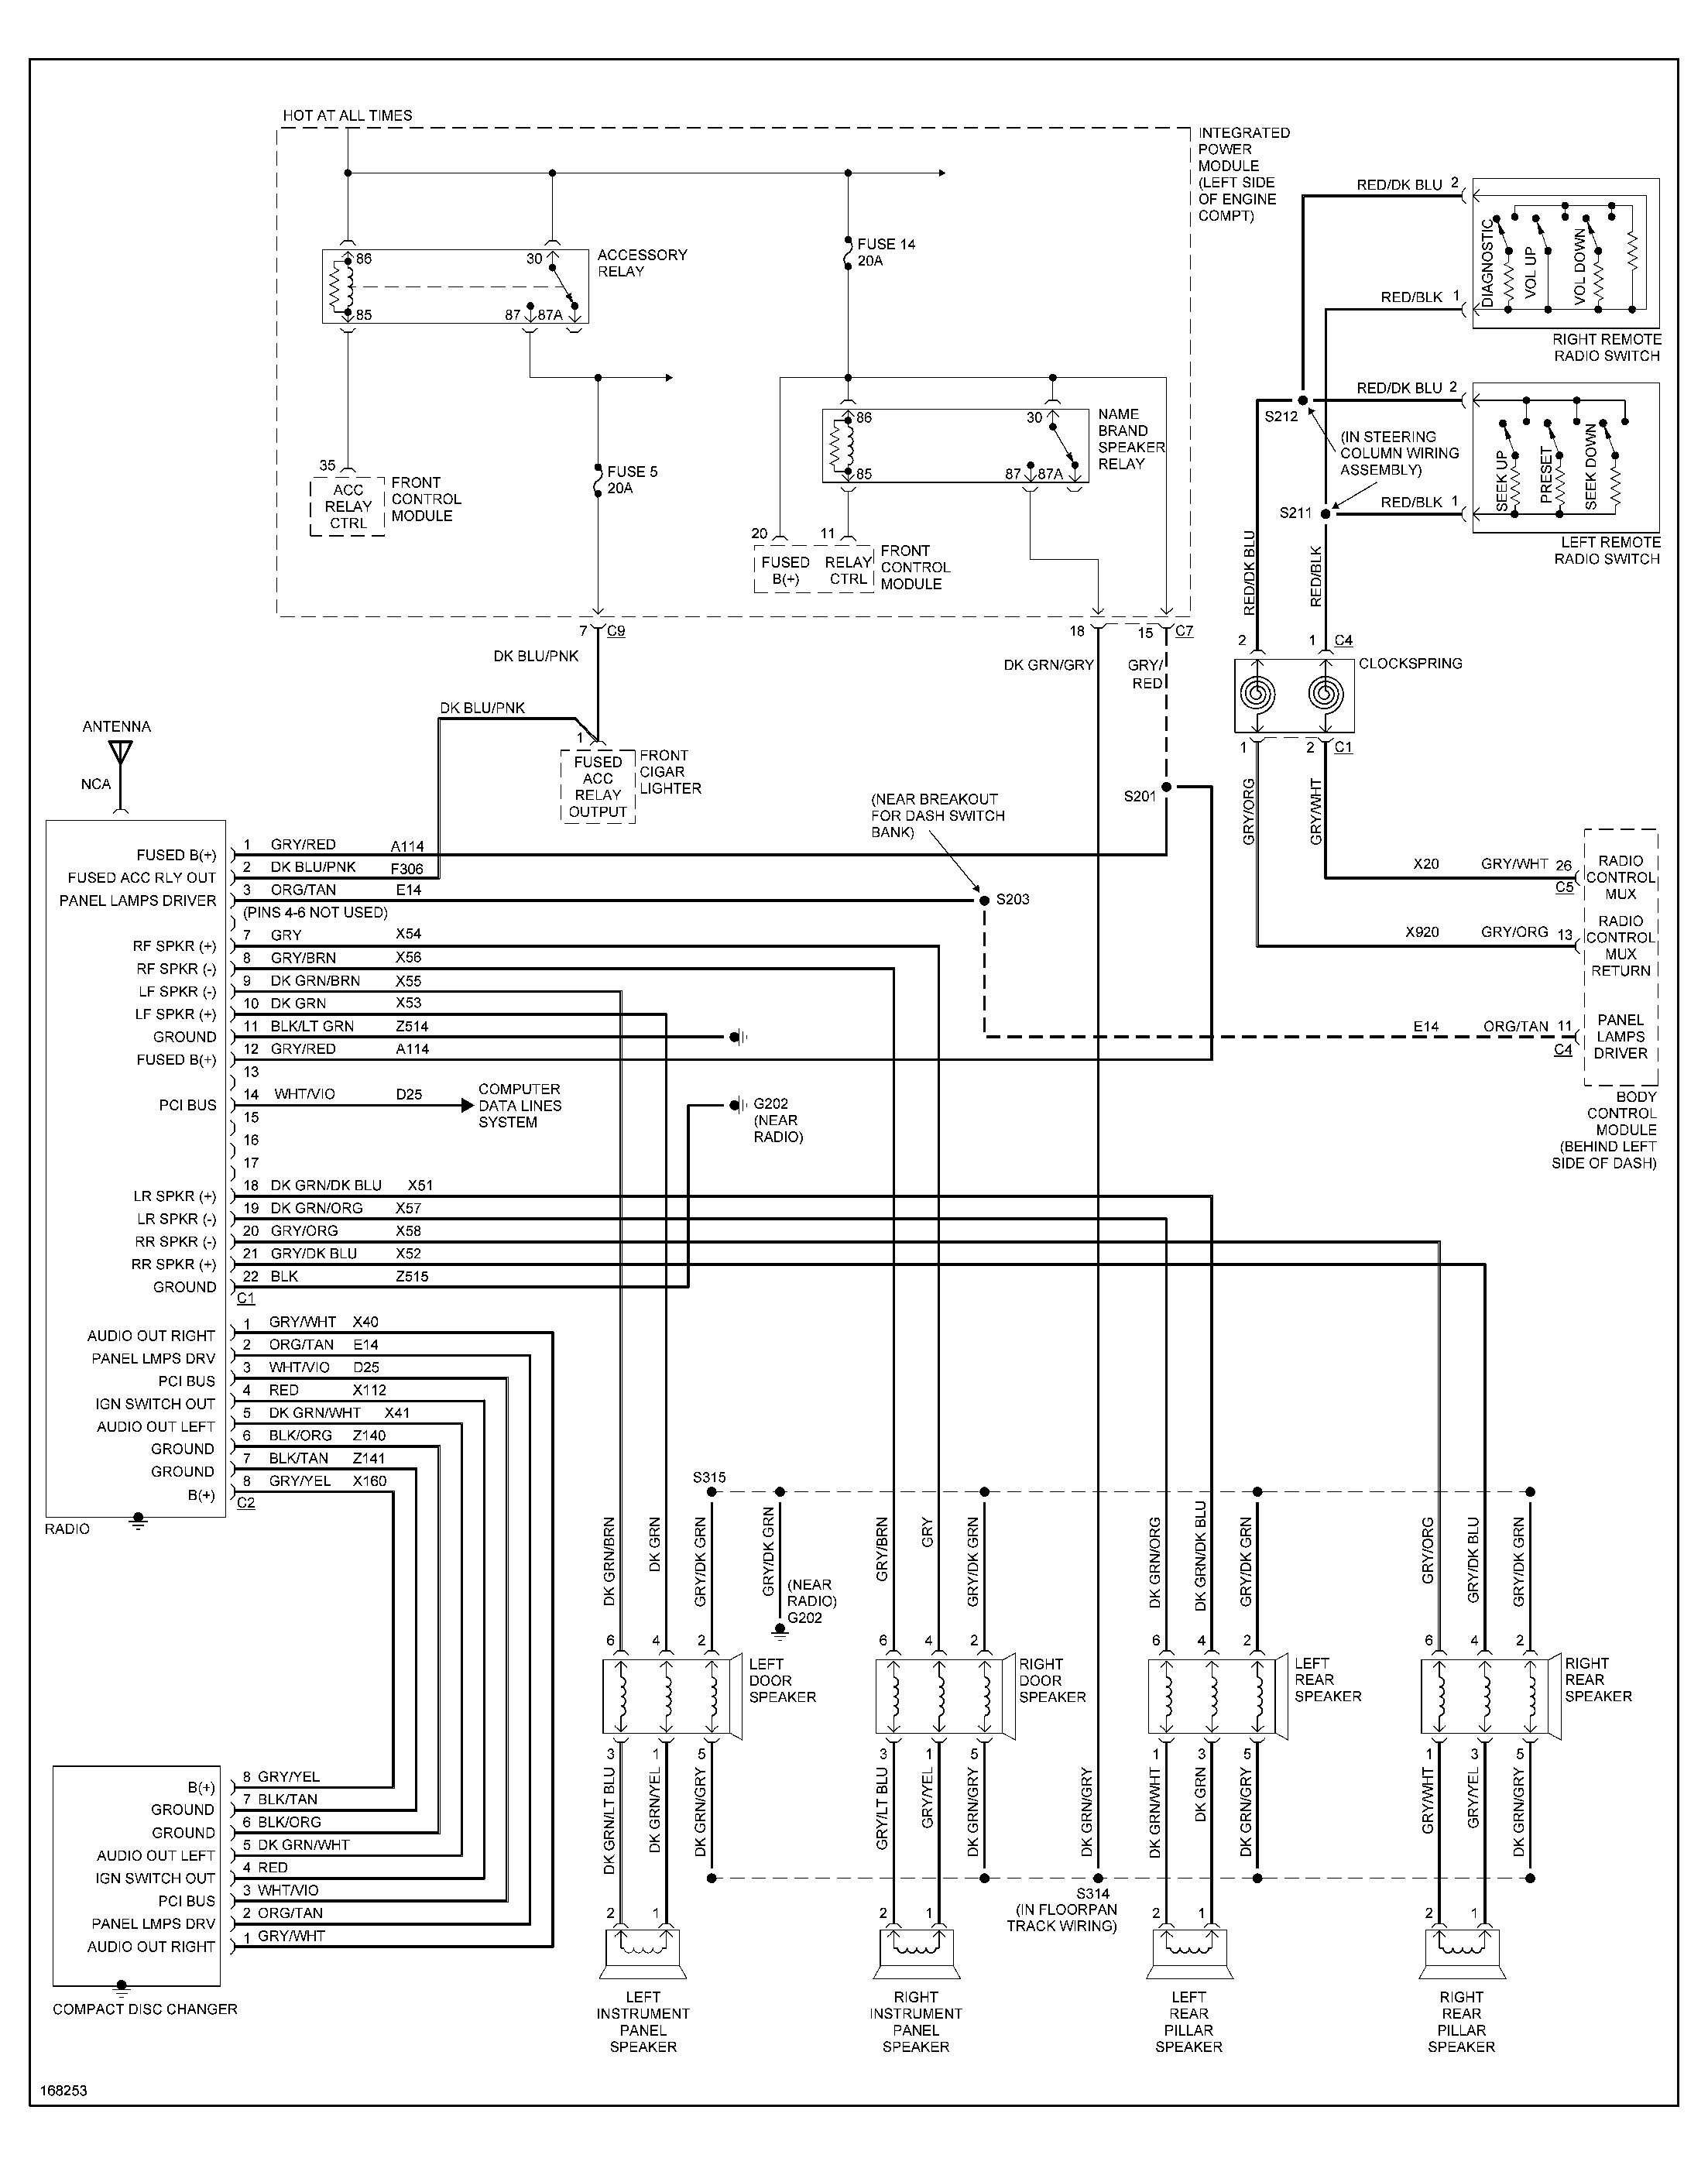 2006 dodge caravan alternator wiring diagram -engine wiring diagram 85 mr2  | begeboy wiring diagram source  begeboy wiring diagram source